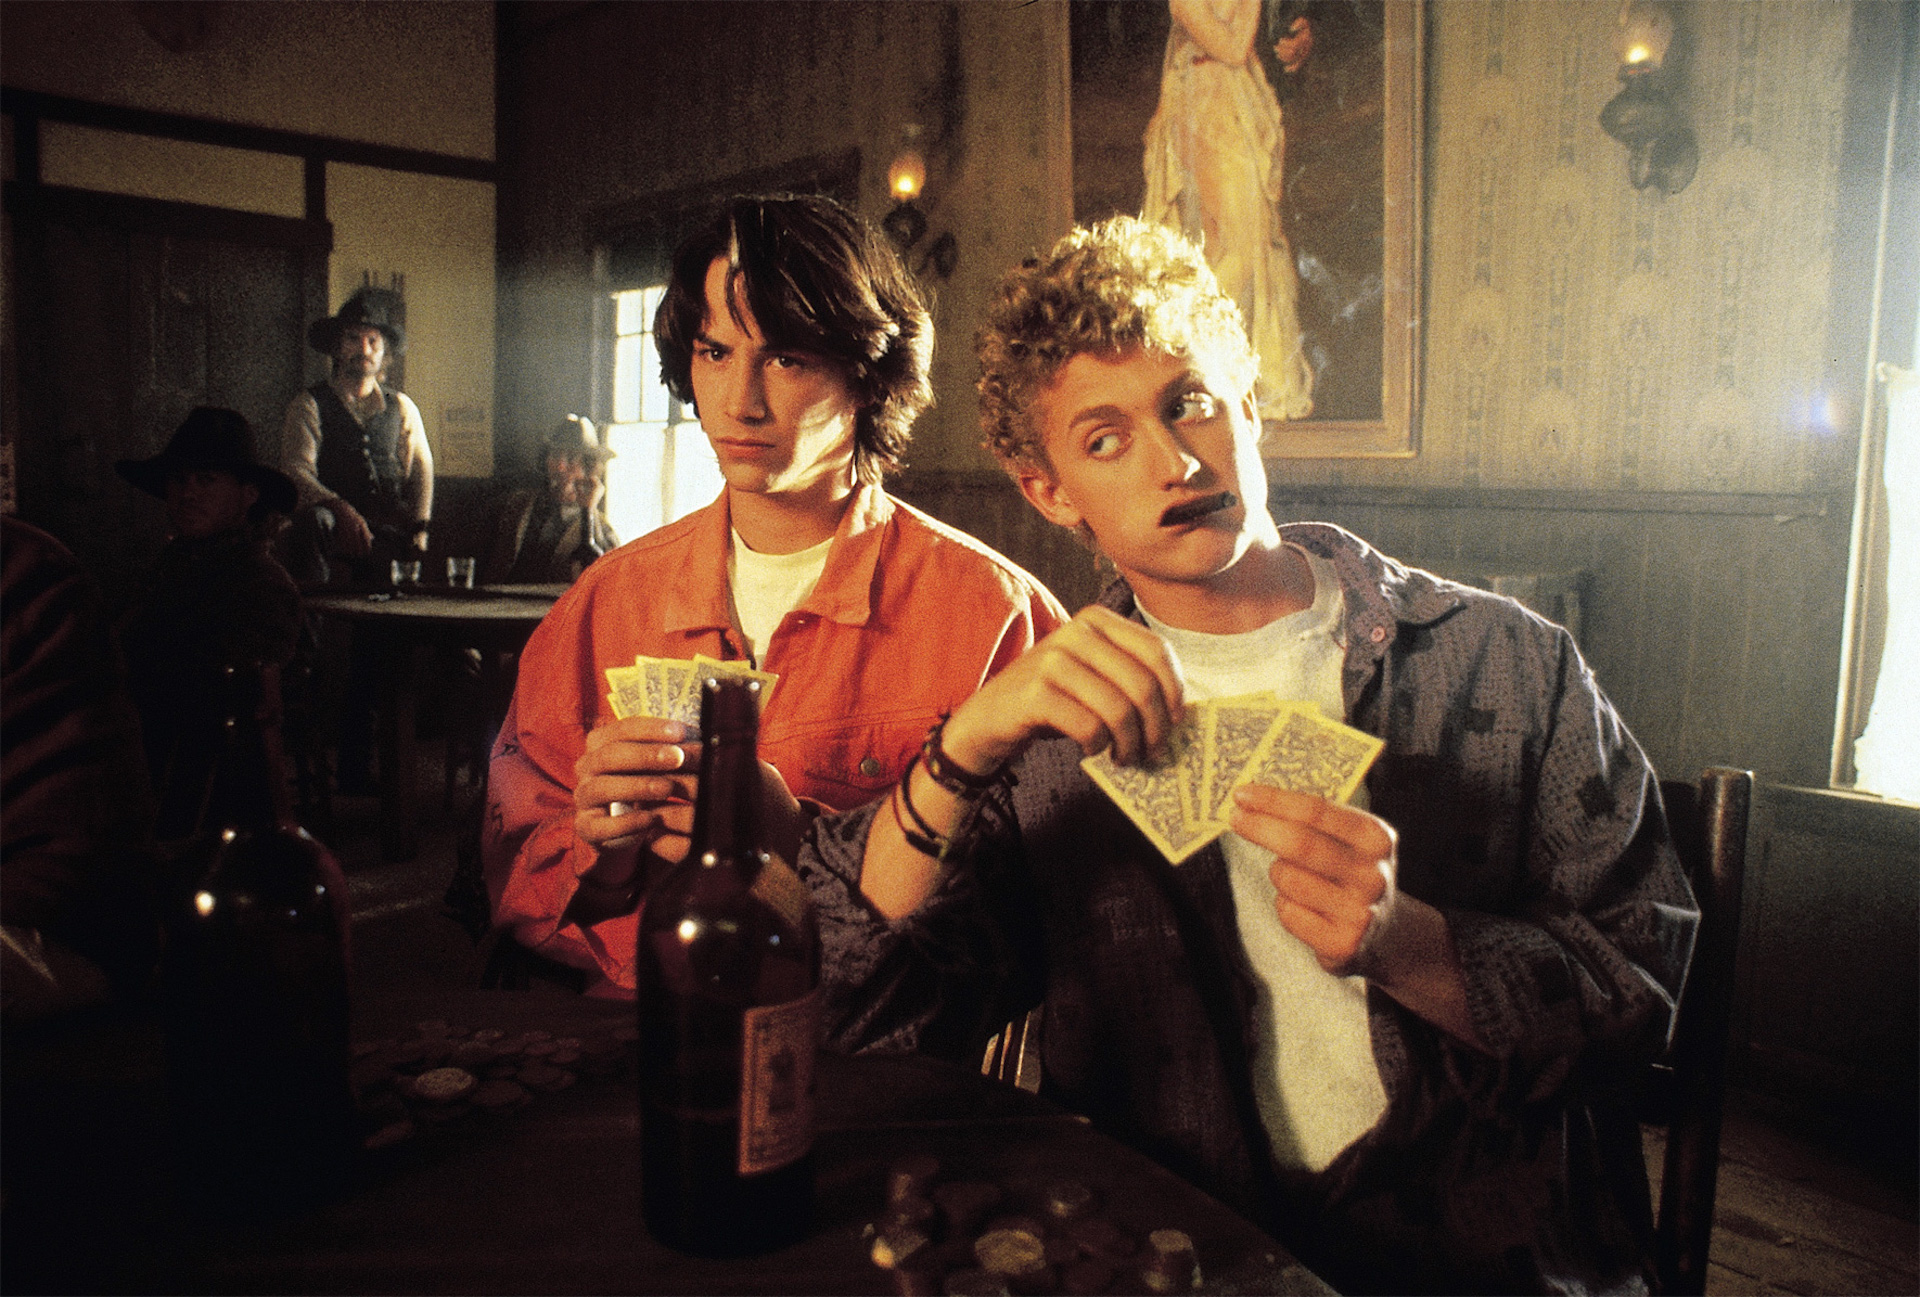 bill and ted announce that 'bill and ted 3' will finally